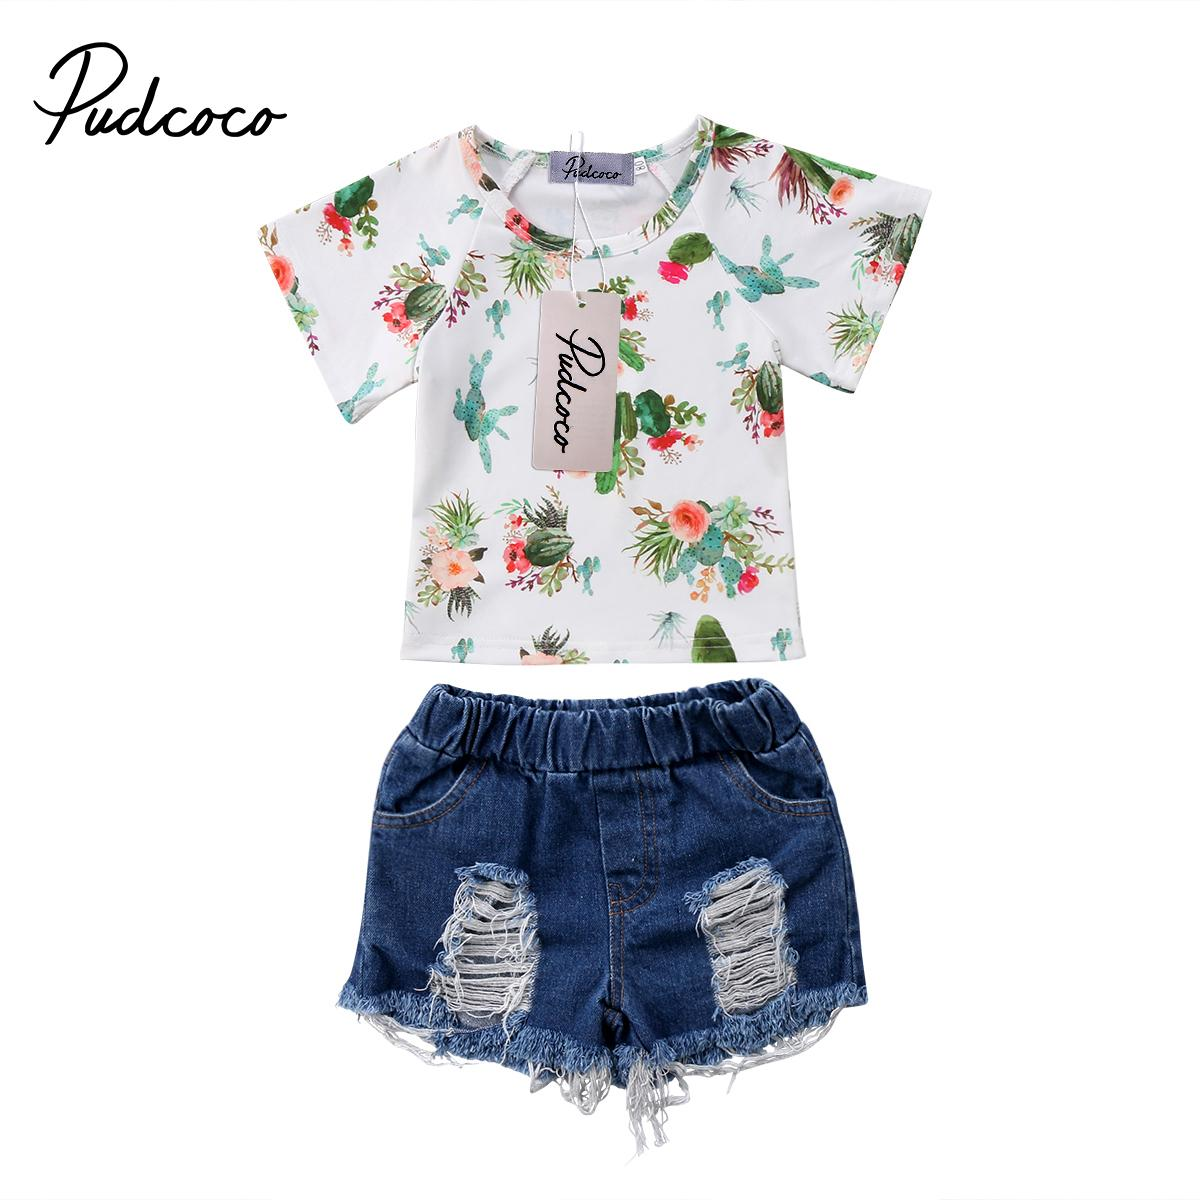 aa2418385 2019 Cool Kids Baby Girls Floral Clothes Set Cactus Print Short Sleeve T  Shirt Top Short Denim Jean Pants Summer Outfits Suit 2018 From Paradise13,  ...